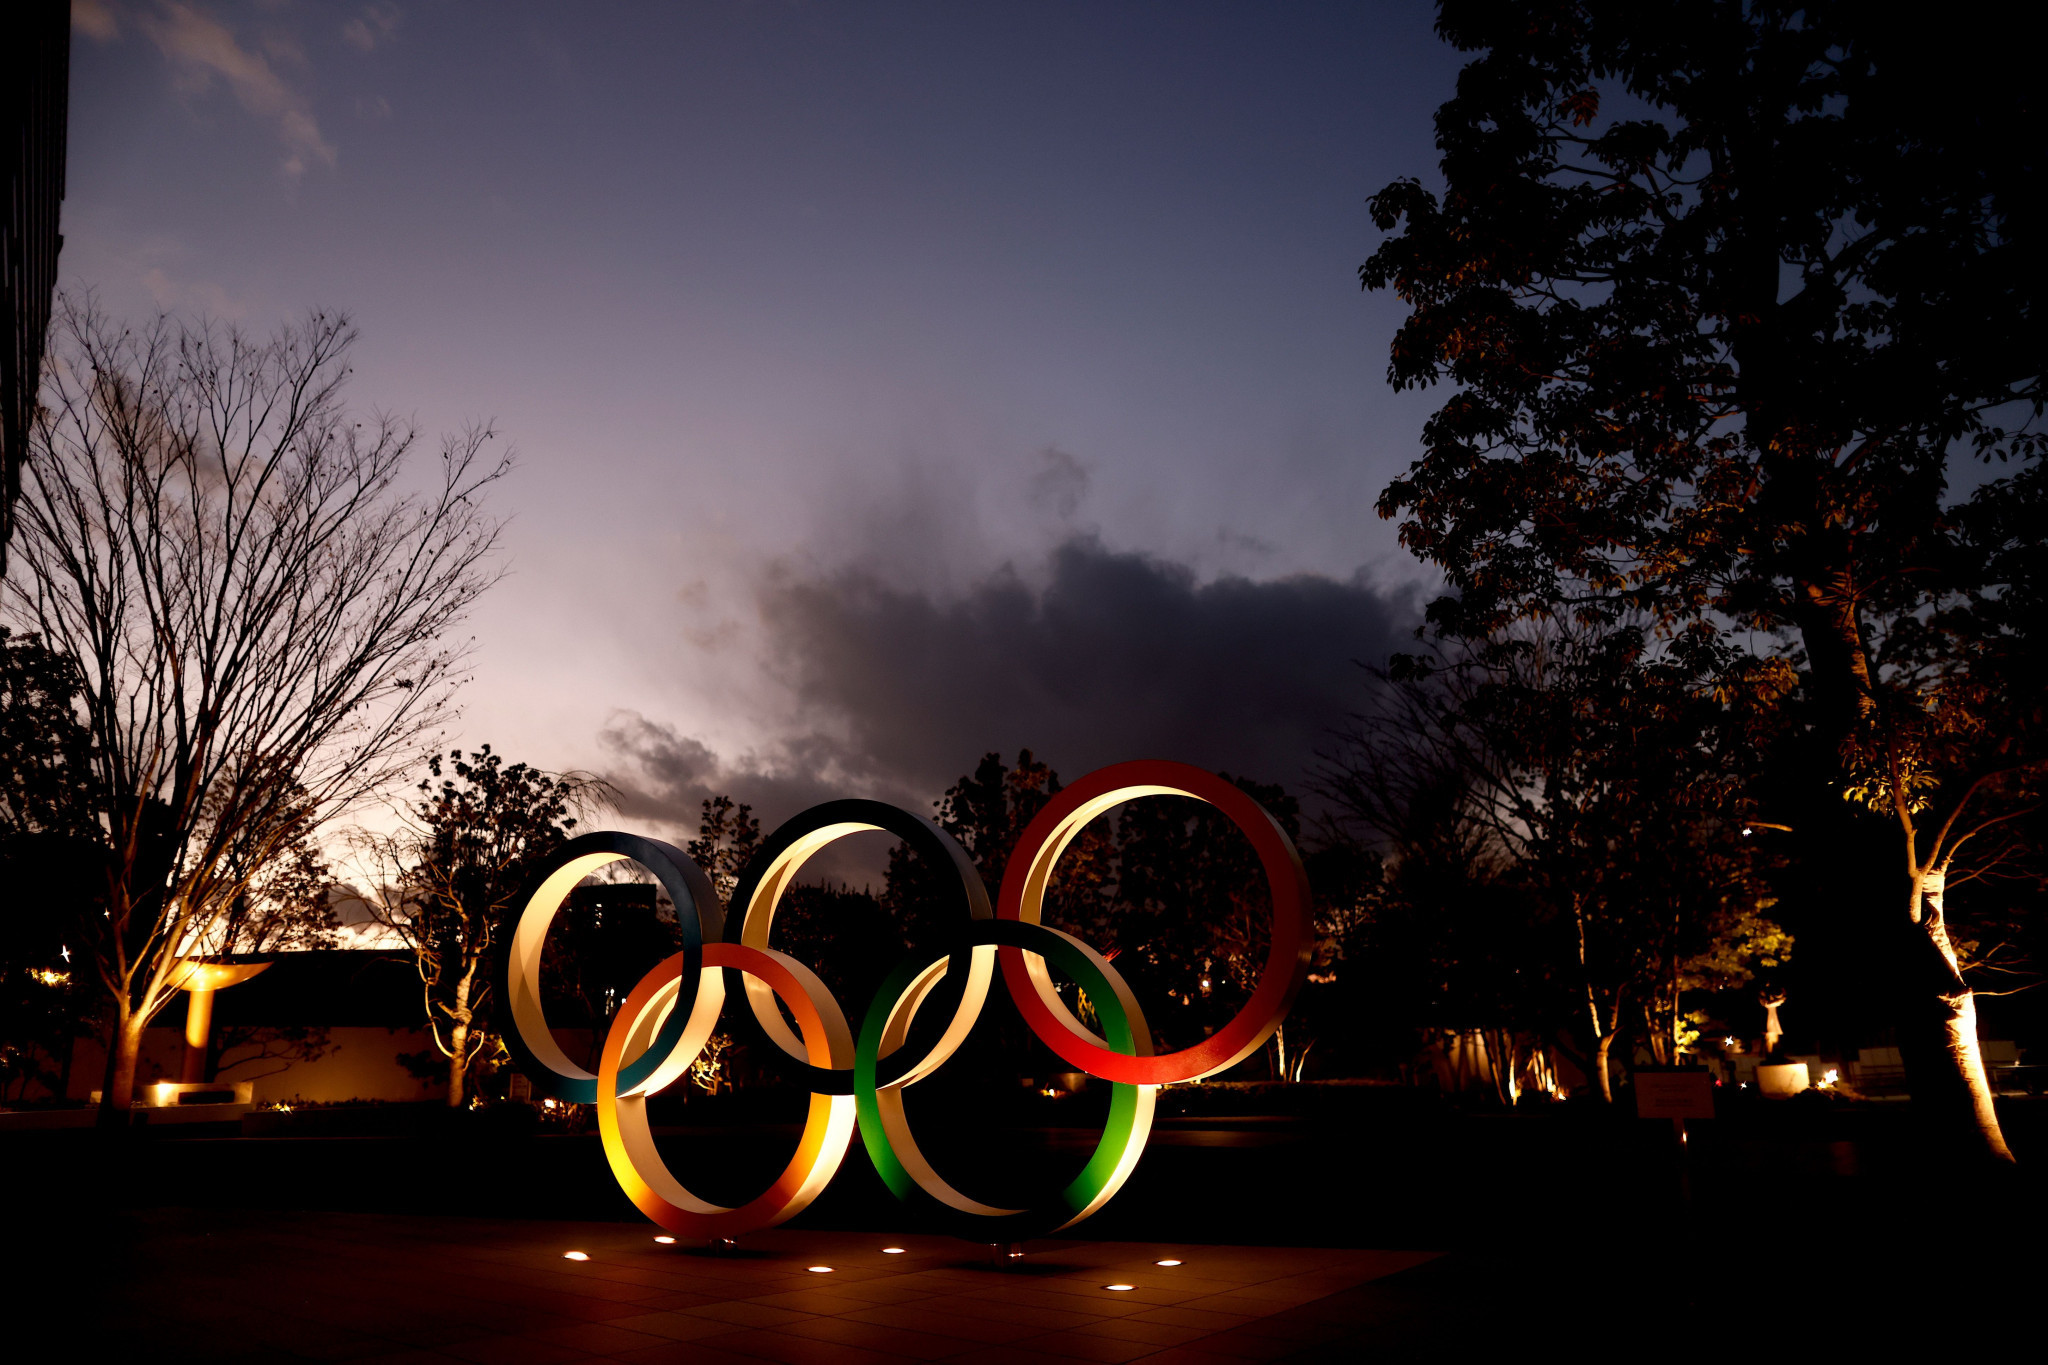 Tokyo 2020 are expected to deliver simplified Opening and Closing Ceremonies ©Getty Images